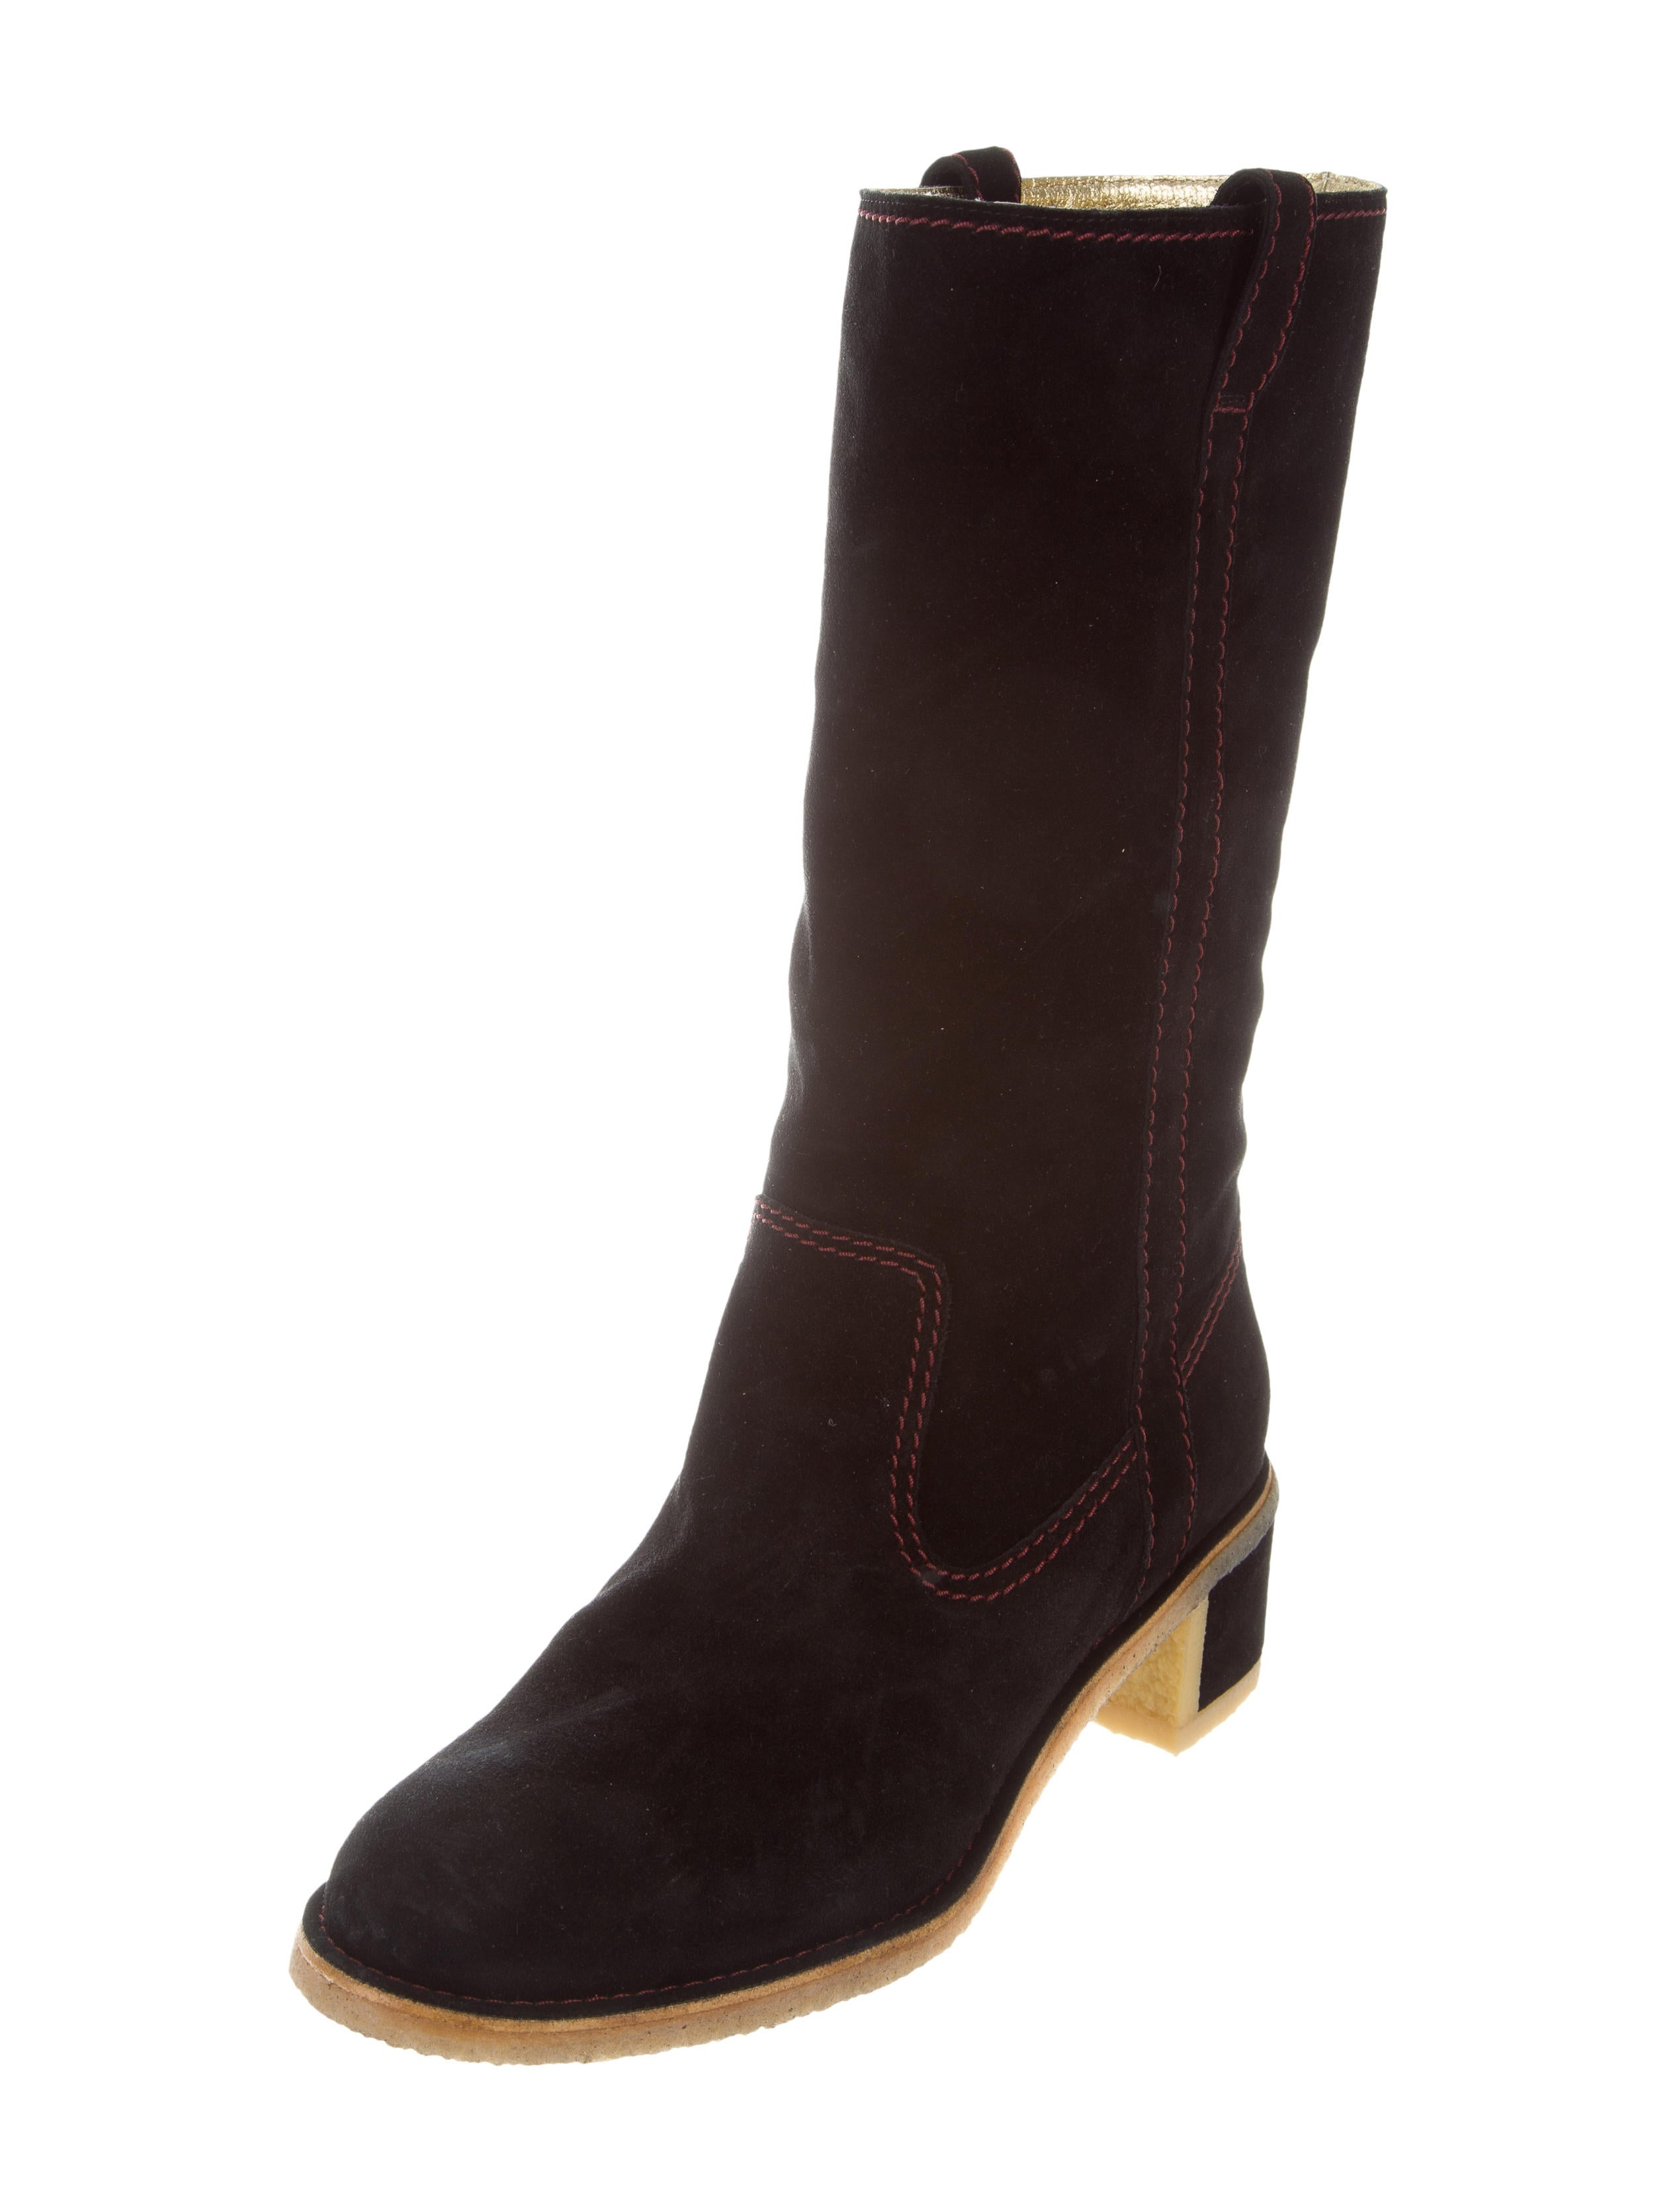 chanel suede mid calf boots shoes cha207414 the realreal